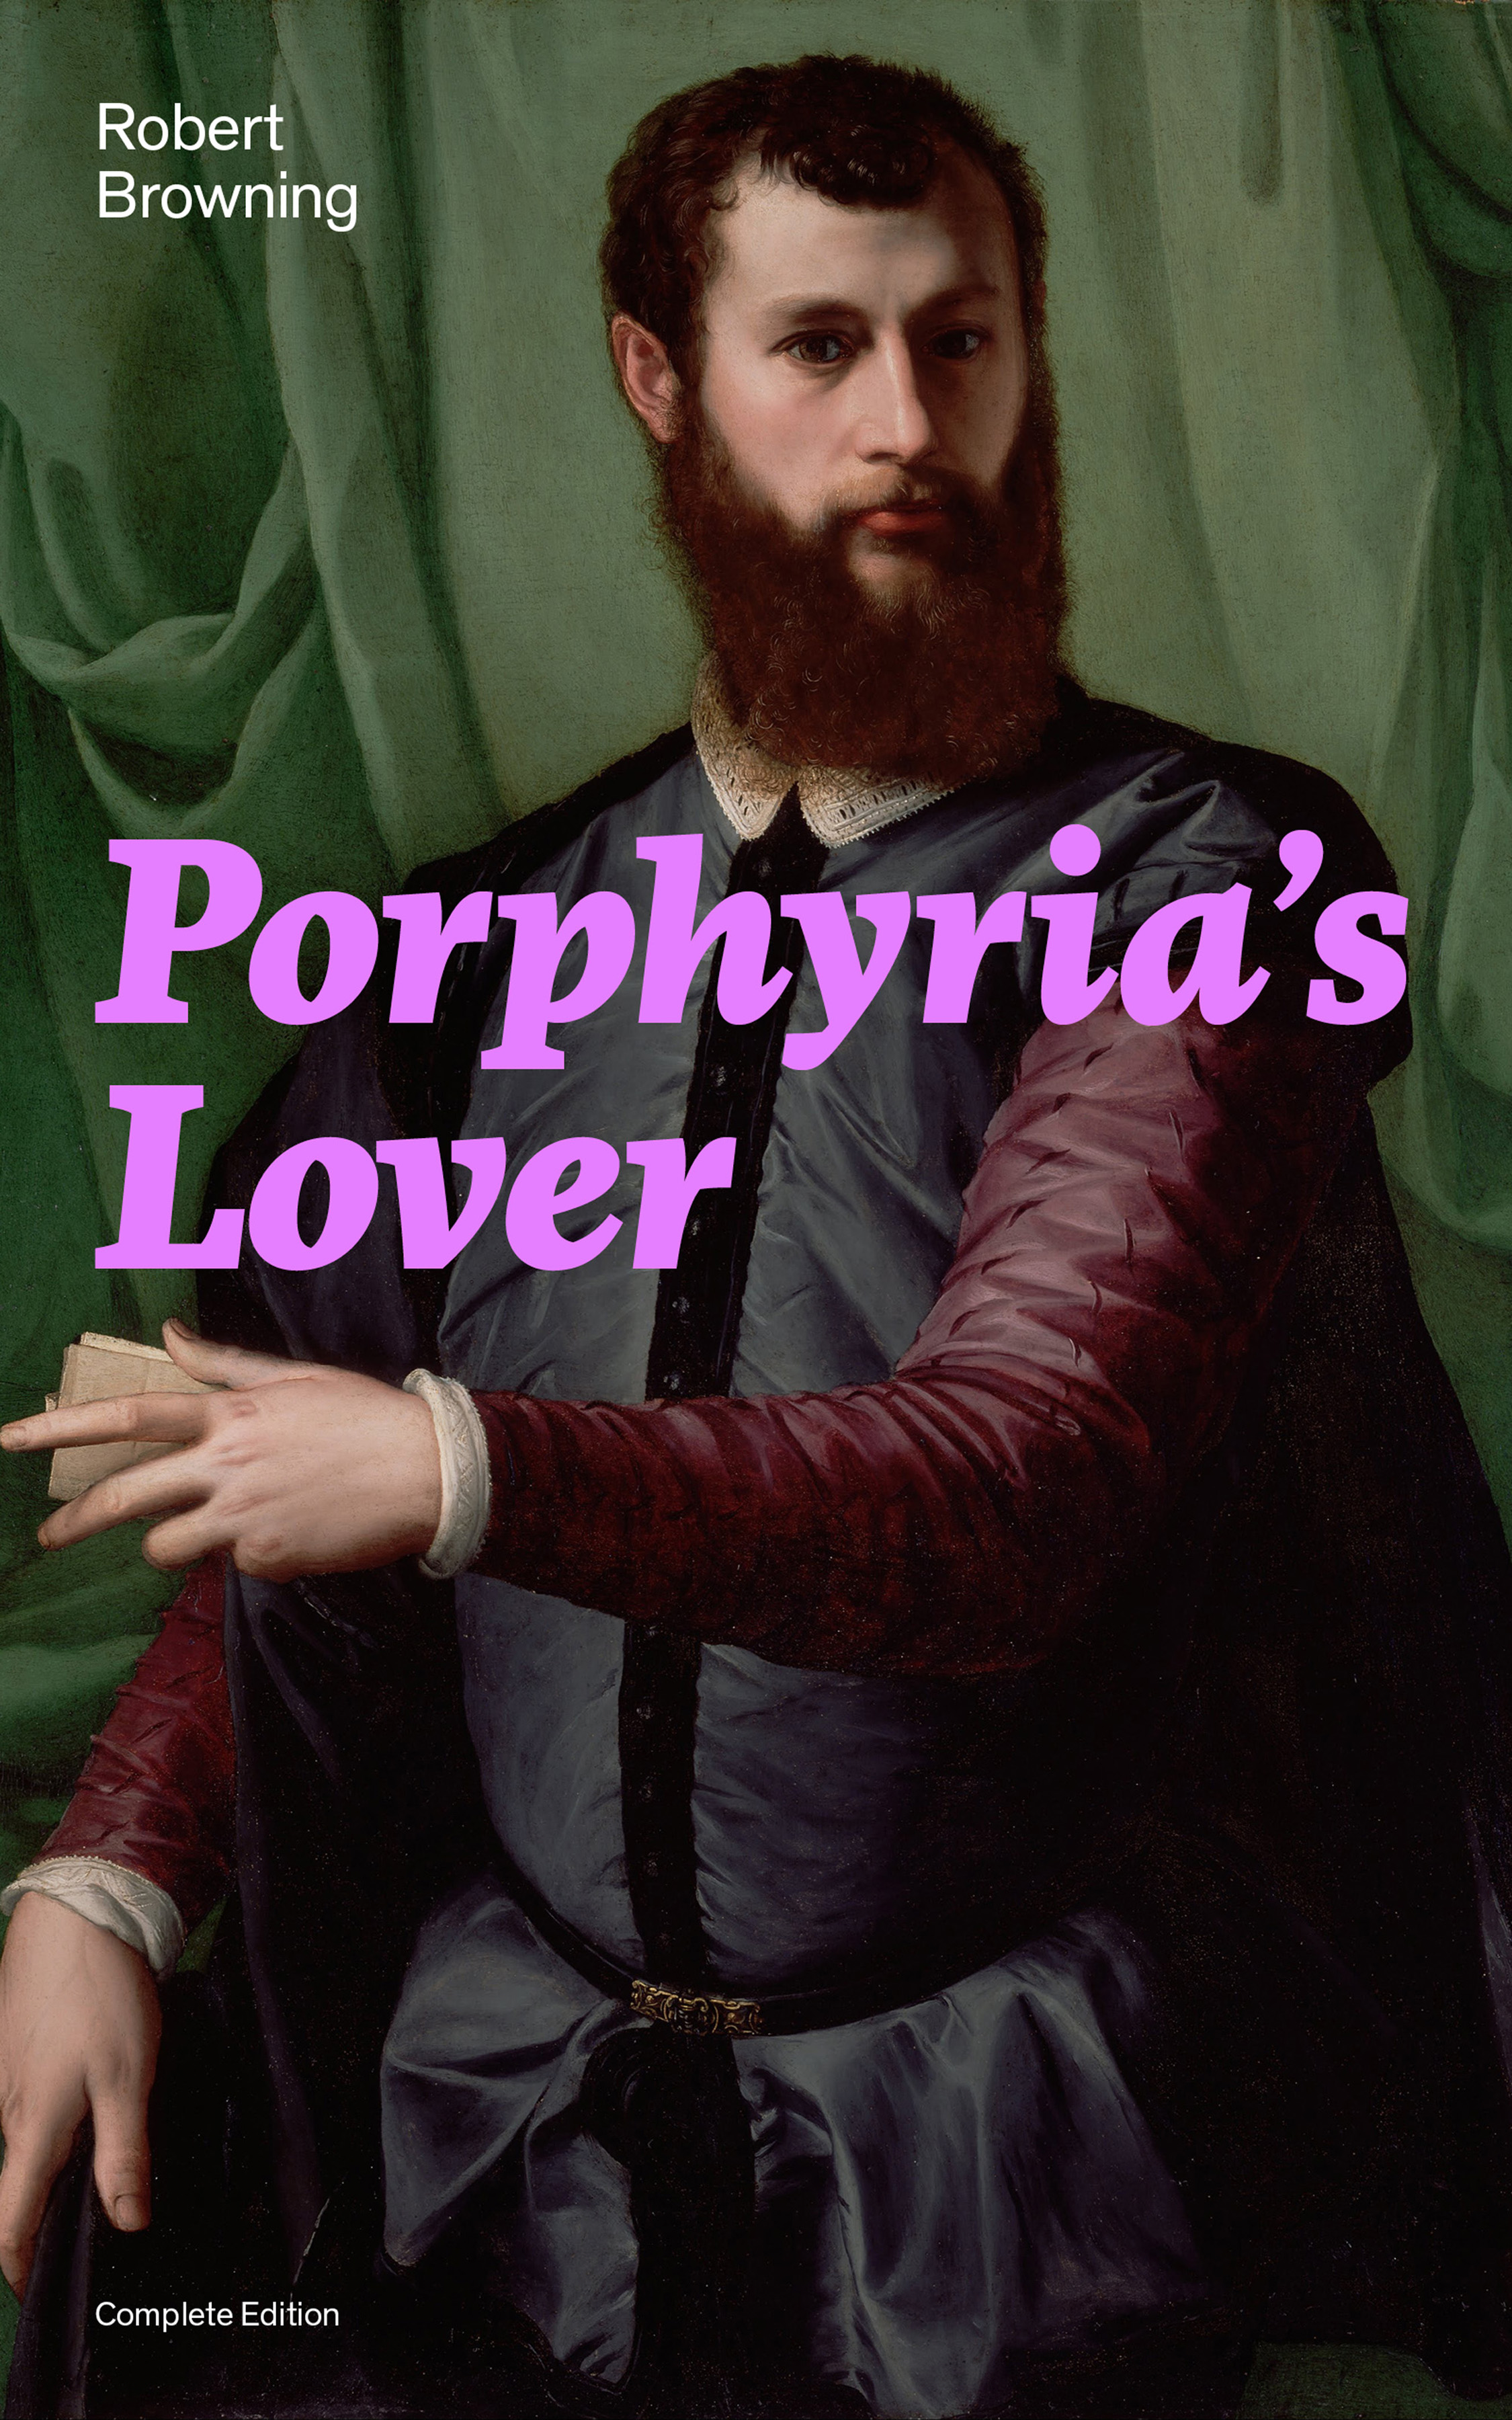 Robert Browning Porphyria's Lover (Complete Edition): A Psychological Poem from one of the most important Victorian poets and playwrights, regarded as a sage and philosopher-poet, known for My Last Duchess, The Pied Piper of Hamelin, Paracelsus… robert browning the pied piper of hamelin and other poems